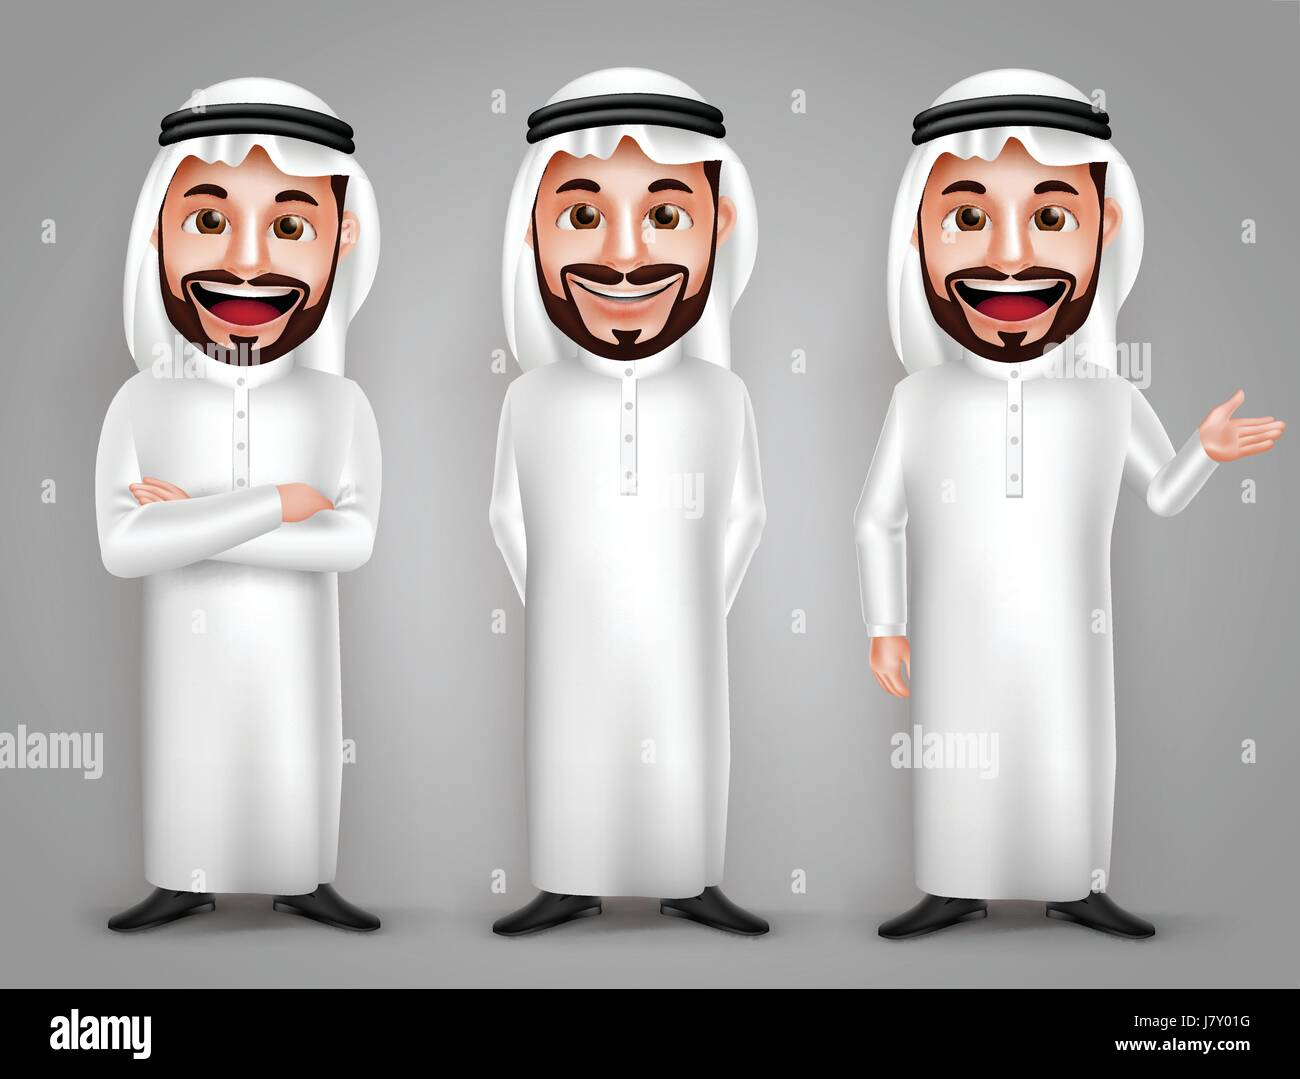 Saudi Arab man vector character set with different friendly gesture and professional pose for business purpose. Stock Vector